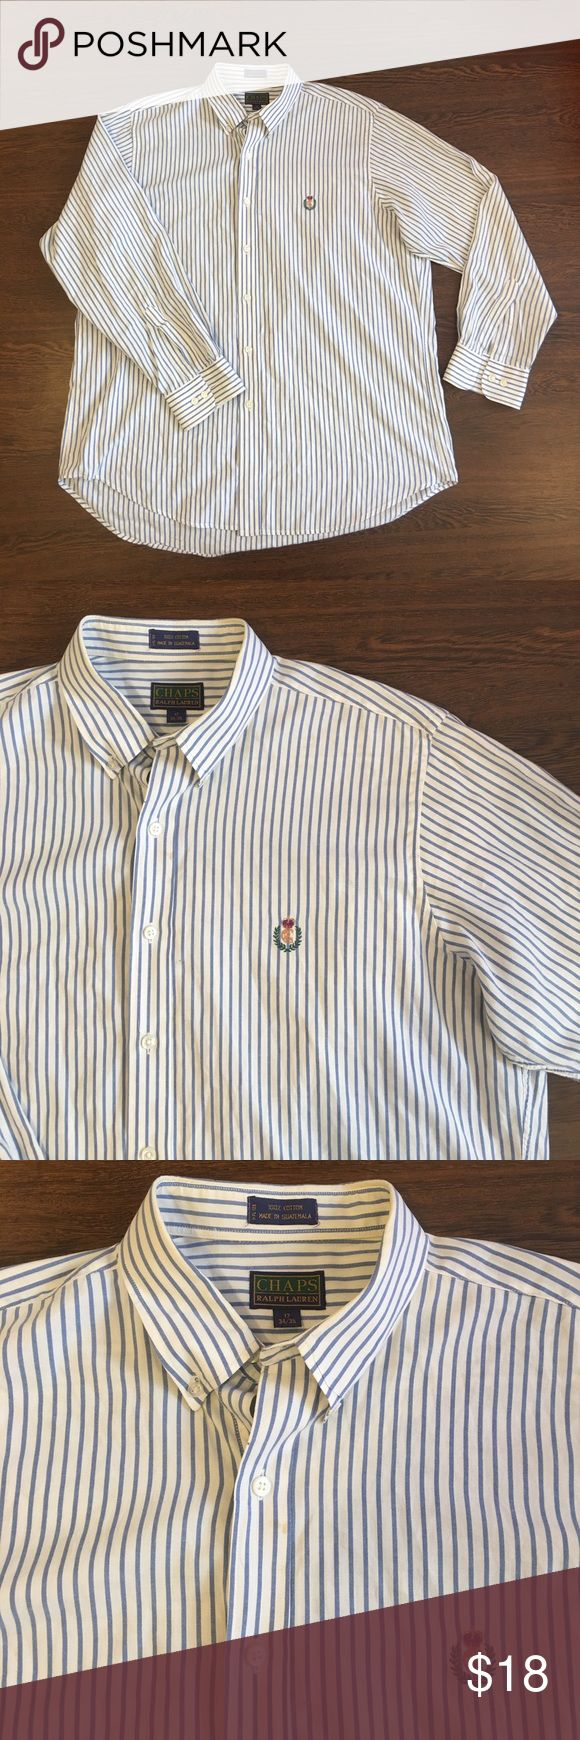 Chaps Ralph Lauren Long Sleeve Button Up Shirt Chaps Ralph Lauren Long Sleeve Button Up Shirt. Men's Size 17 34/35 Dress Shirt. White With Blue Stripes. Embroidered Logo. Lightly Worn With Small Spot On Front And Cuff Area. Chaps Ralph Lauren  Shirts Casual Button Down Shirts